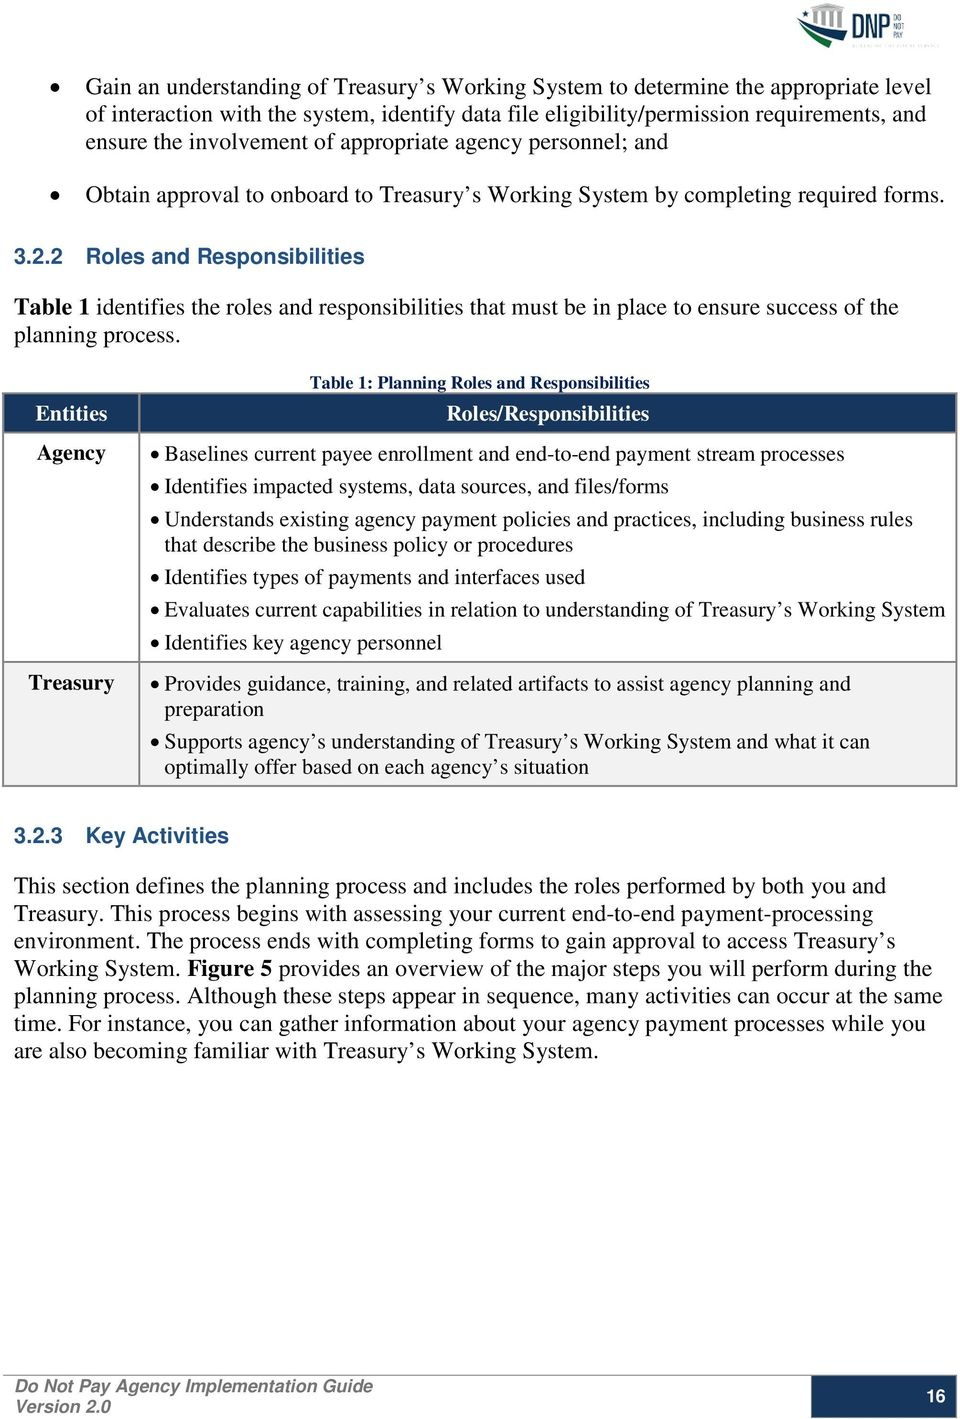 2 Roles and Responsibilities Table 1 identifies the roles and responsibilities that must be in place to ensure success of the planning process.